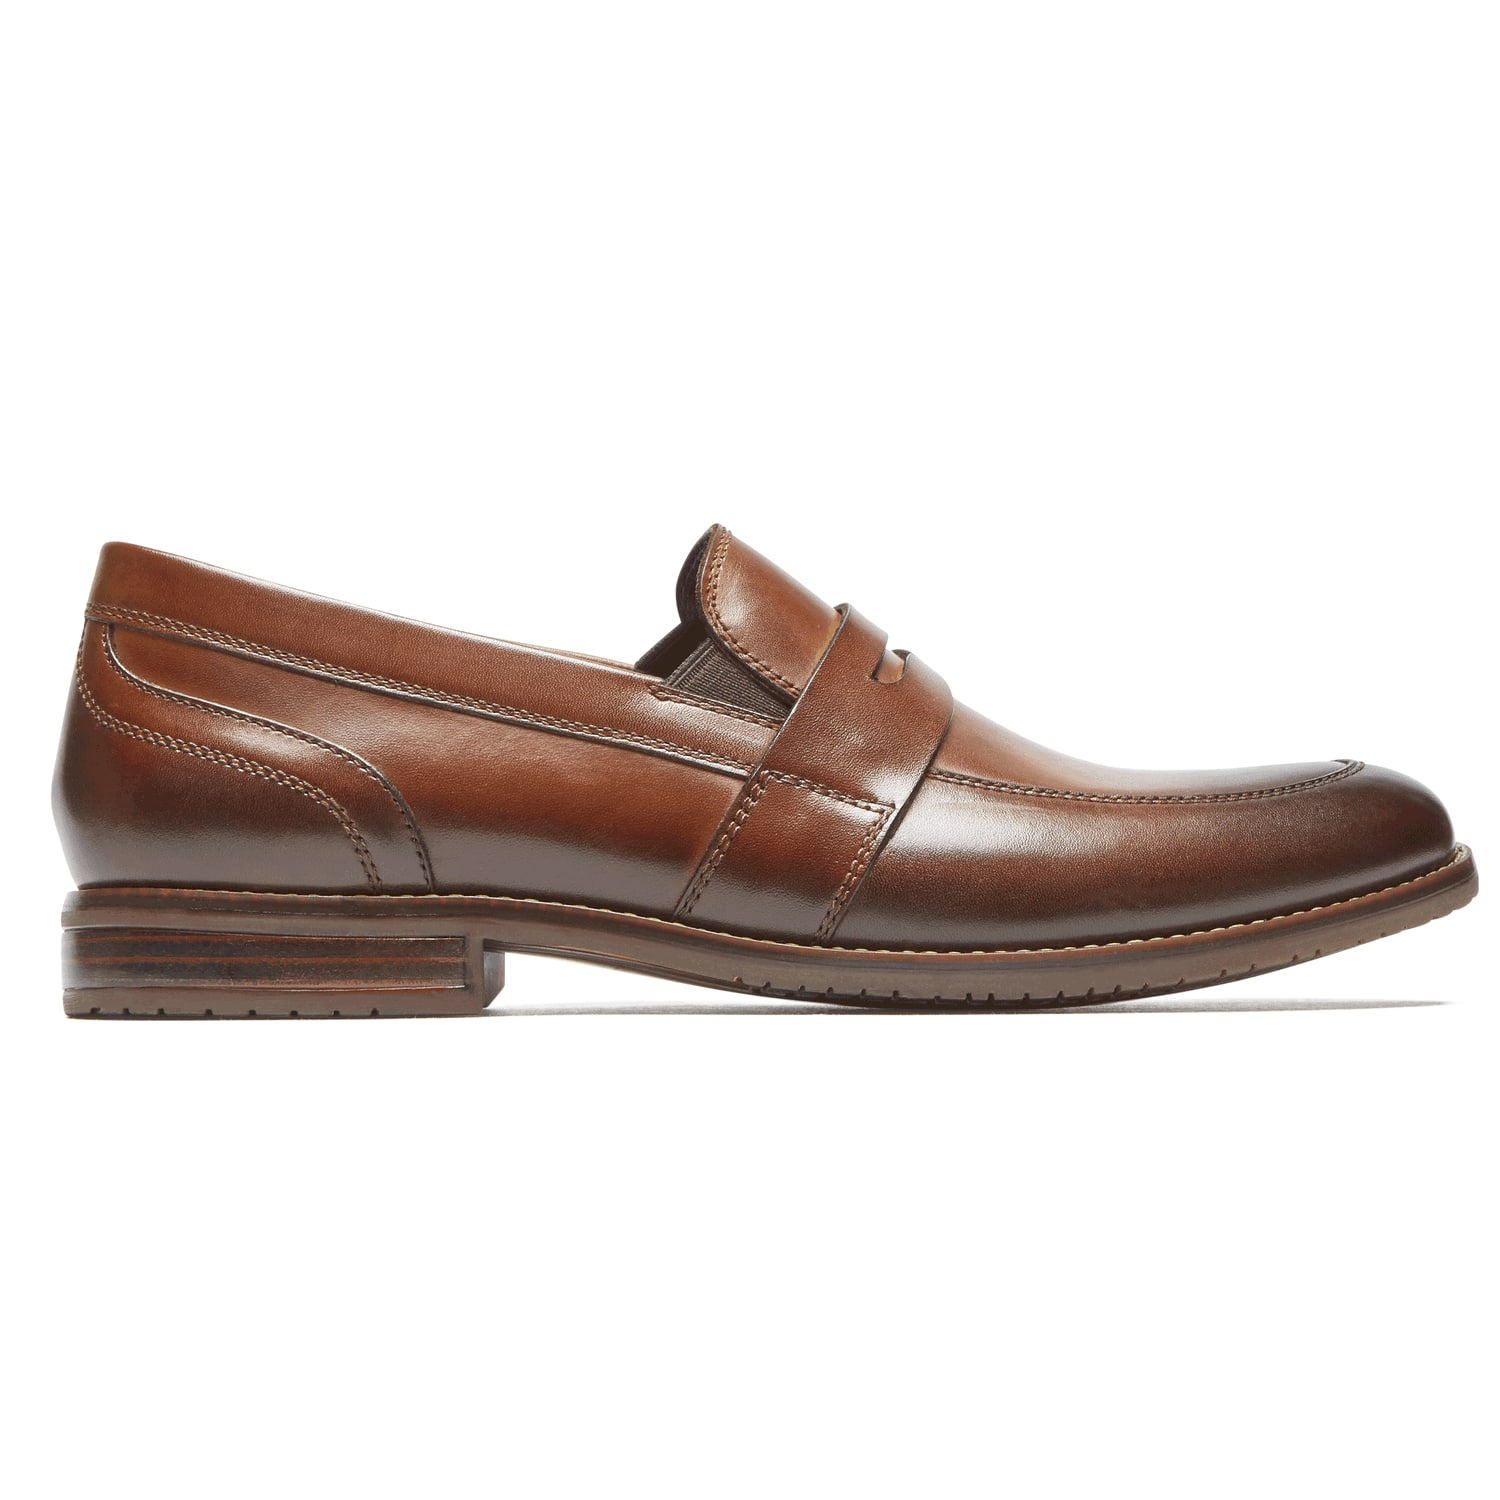 Rockport Men's Style Purpose 3 Double Gore Leather Penny Loafer (cognac leather) $34.98 Shipped